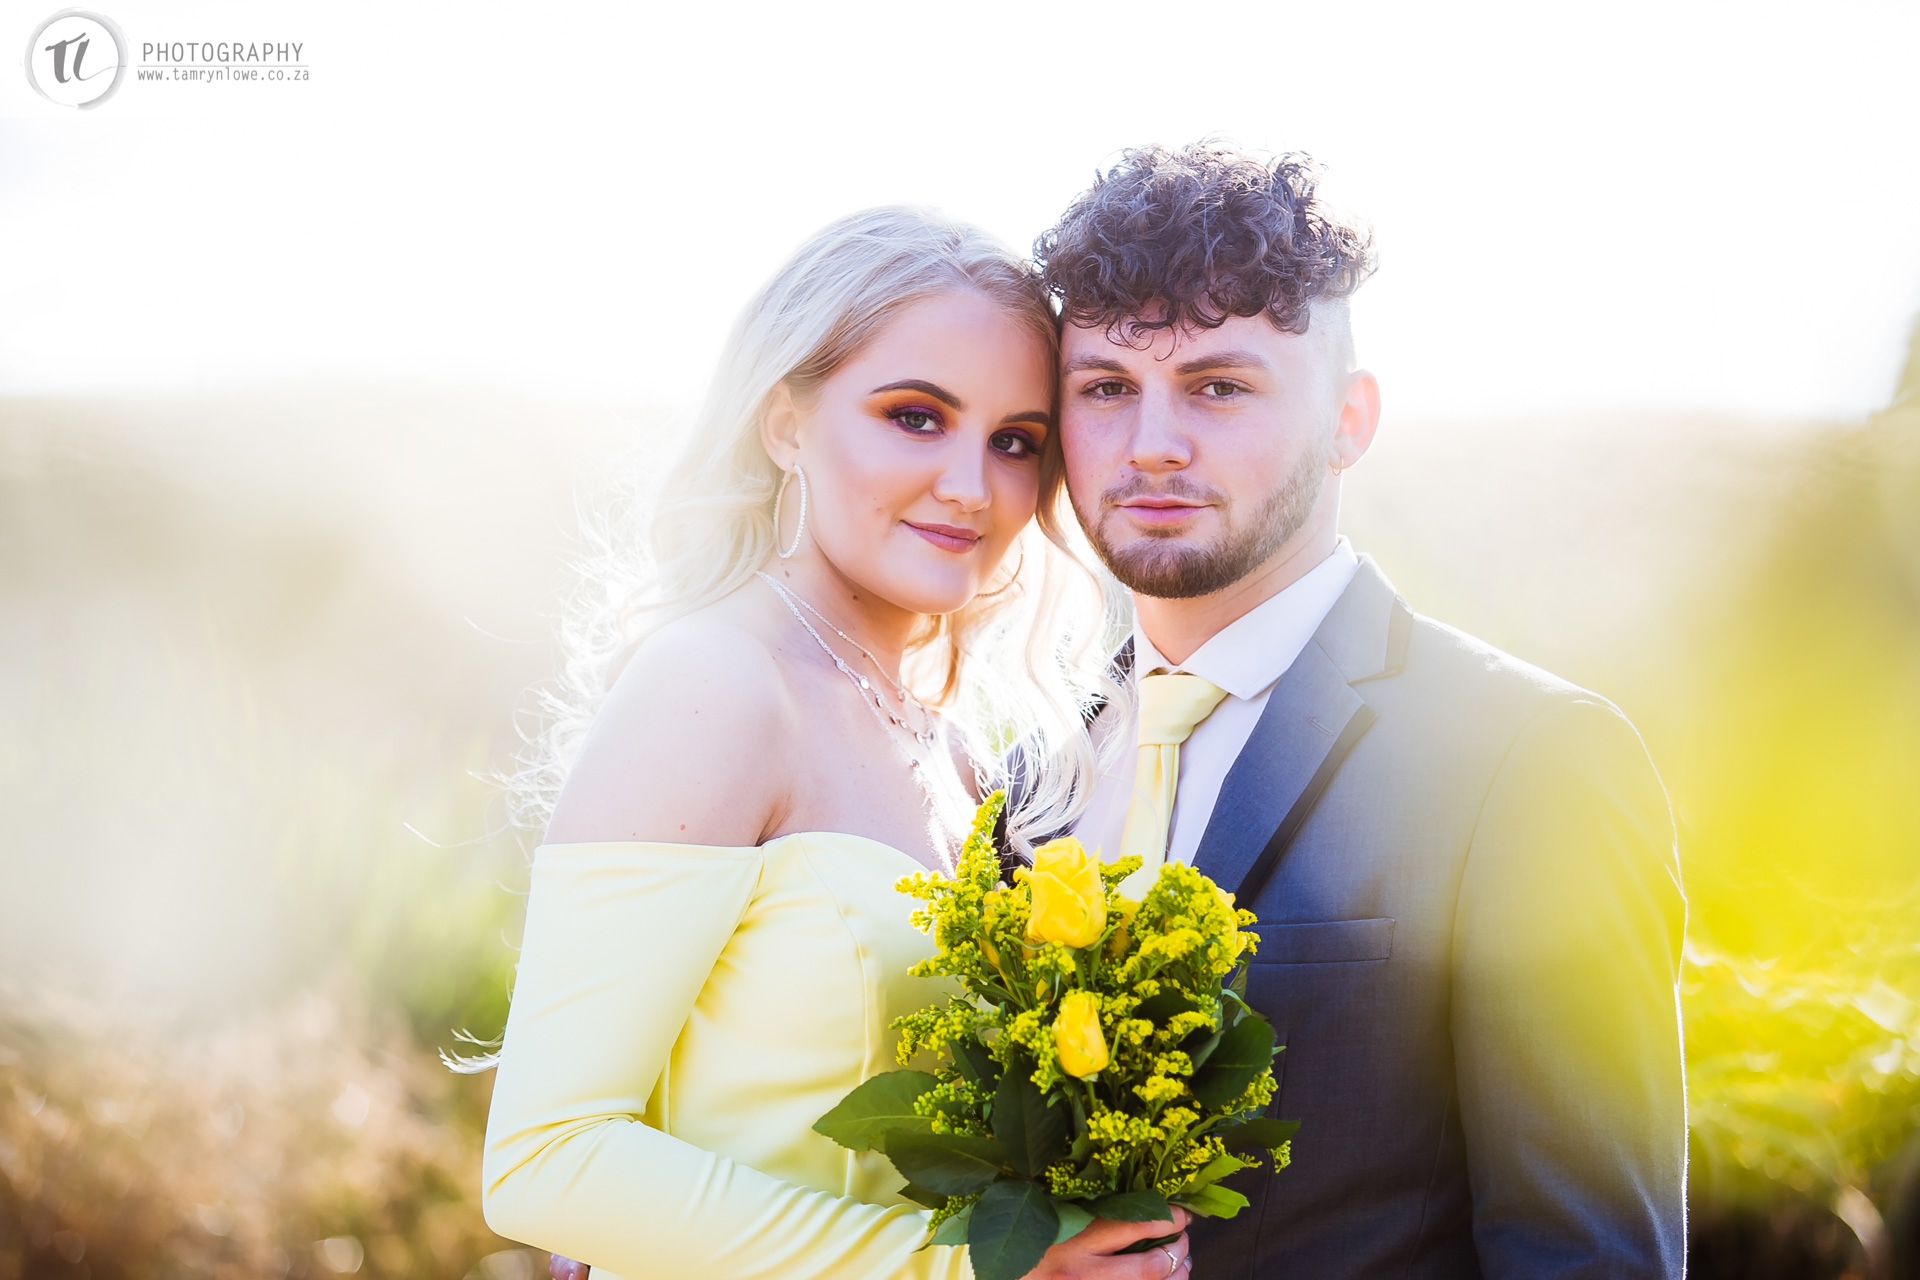 Jordan & Brandon Matric Dance Photoshoot